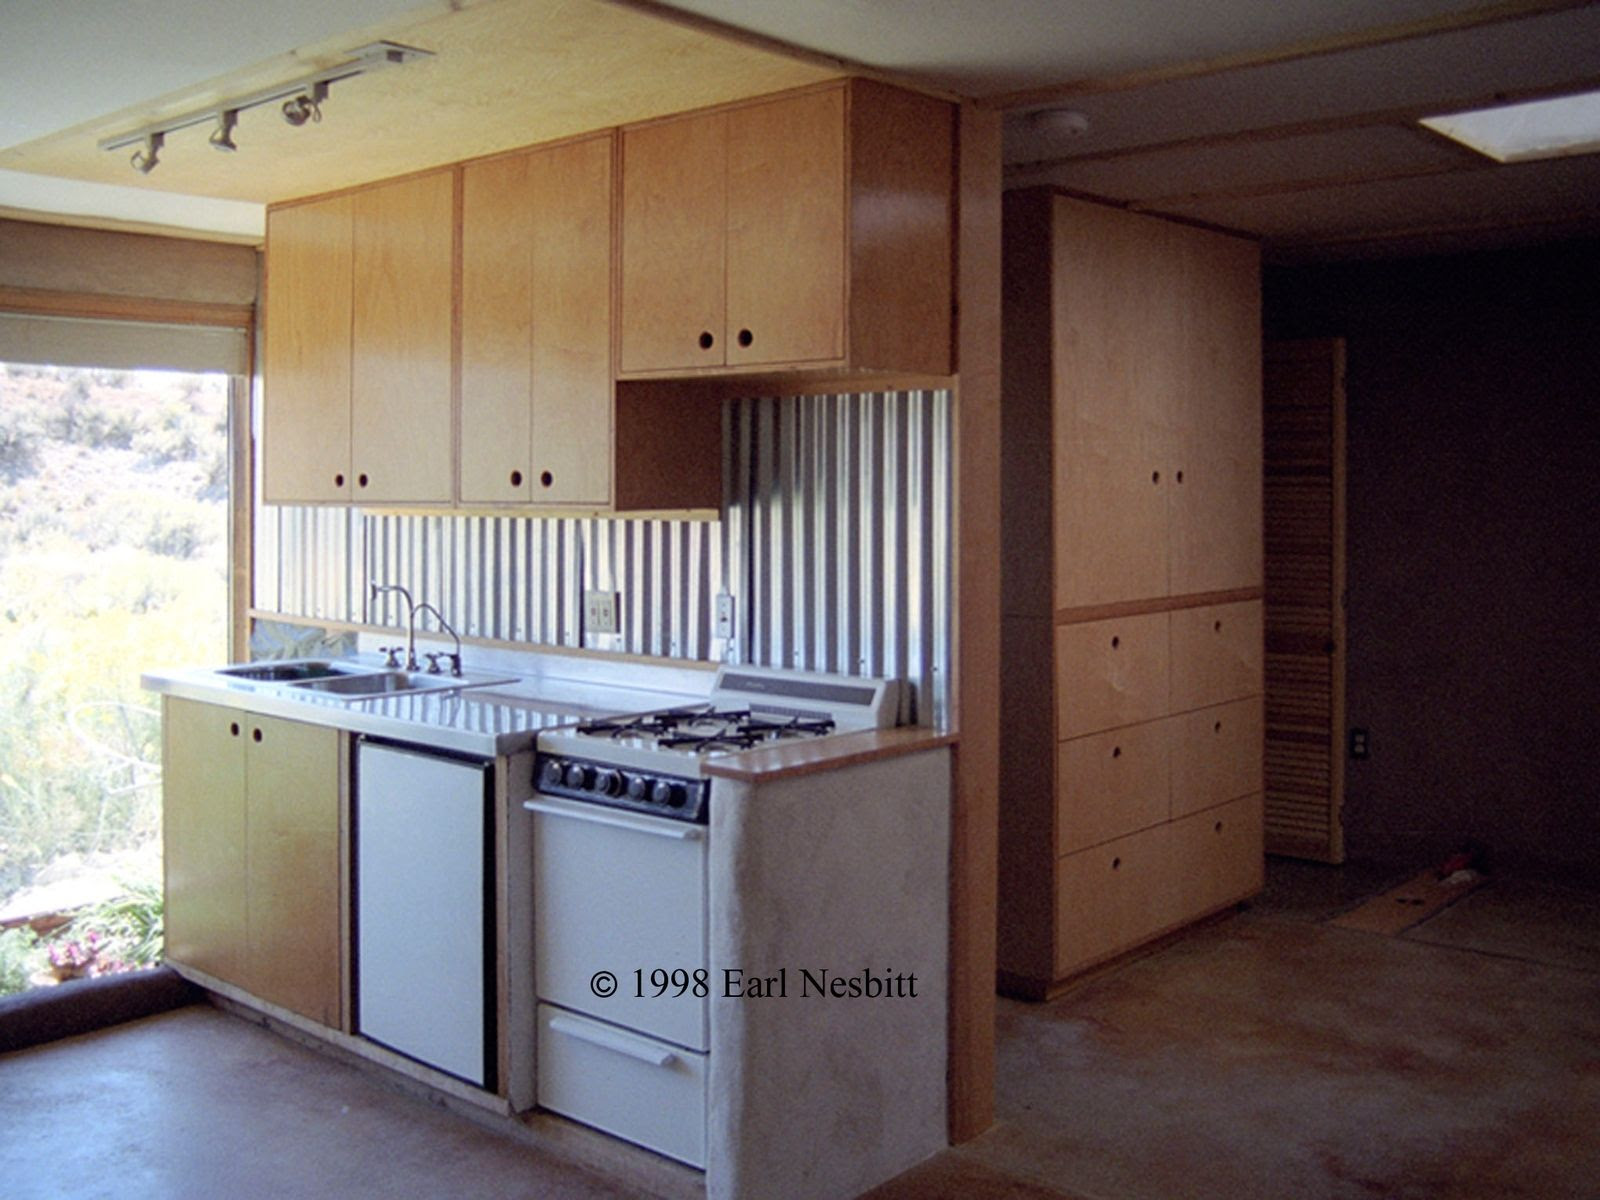 Custom Kitchen Cabinets Plywood Birch by Earl Nesbitt